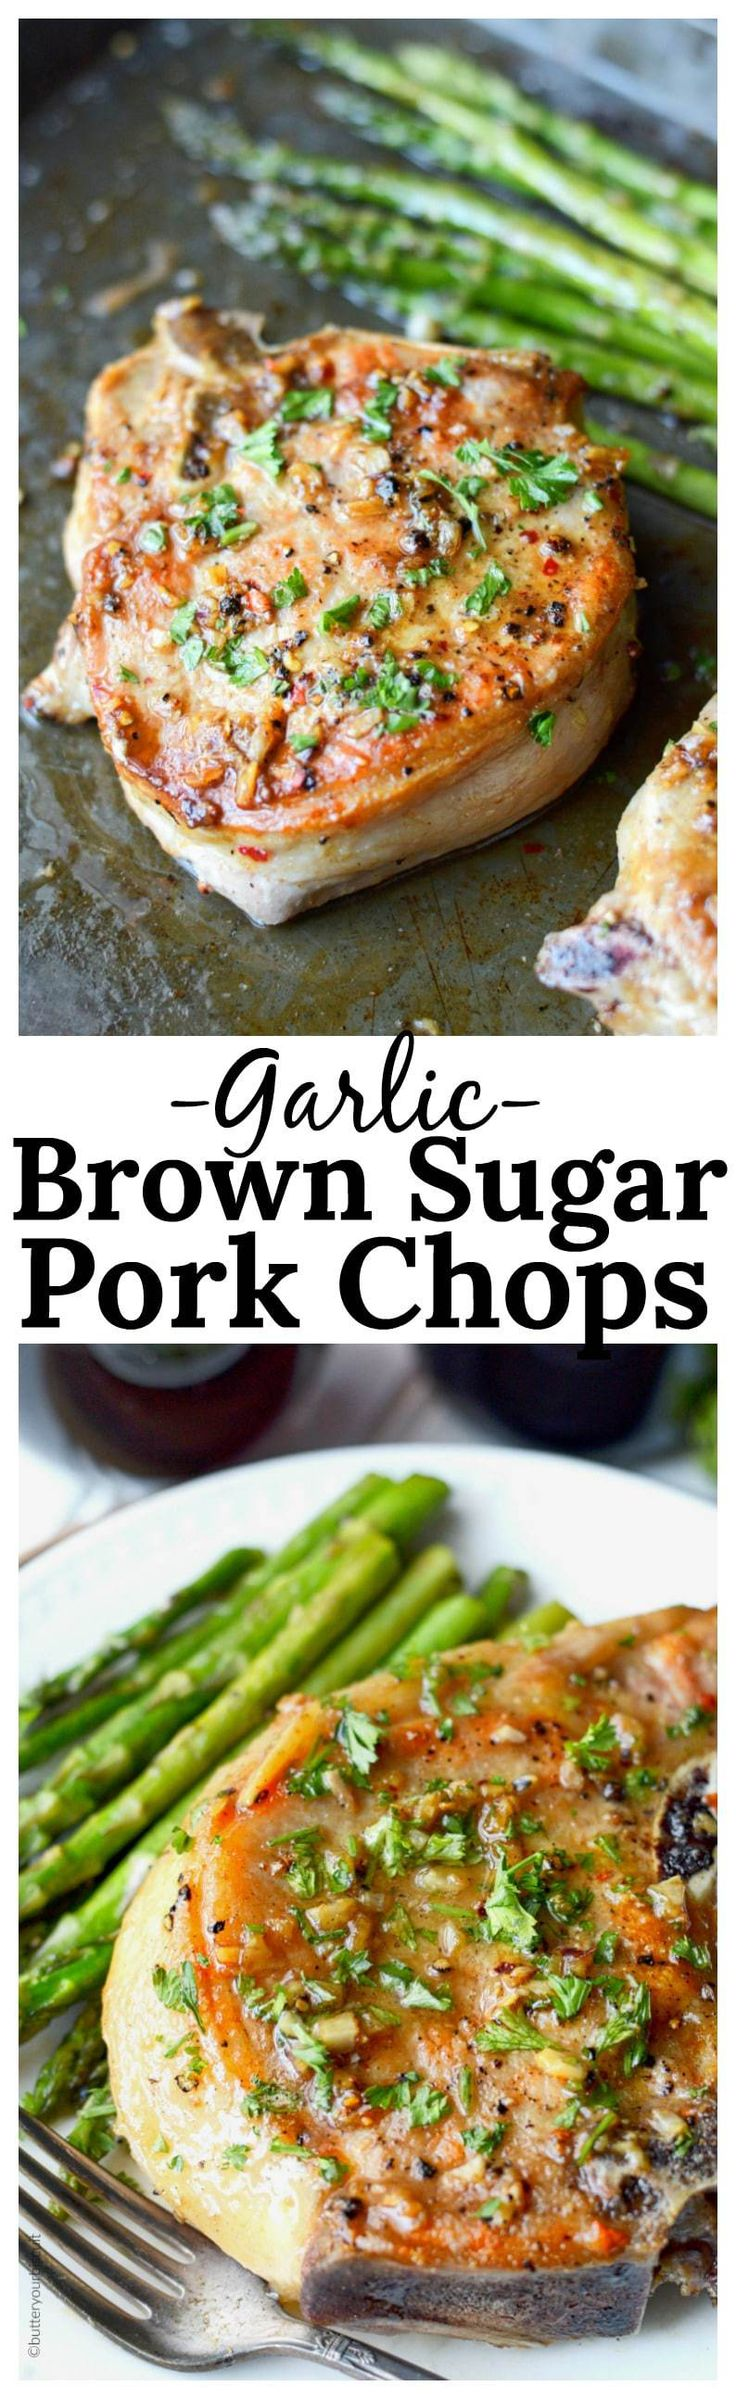 This Garlic Brown Sugar Pork Chops recipe is such a delicious blend of flavors. Super quick and easy sure to be a new family favorite!